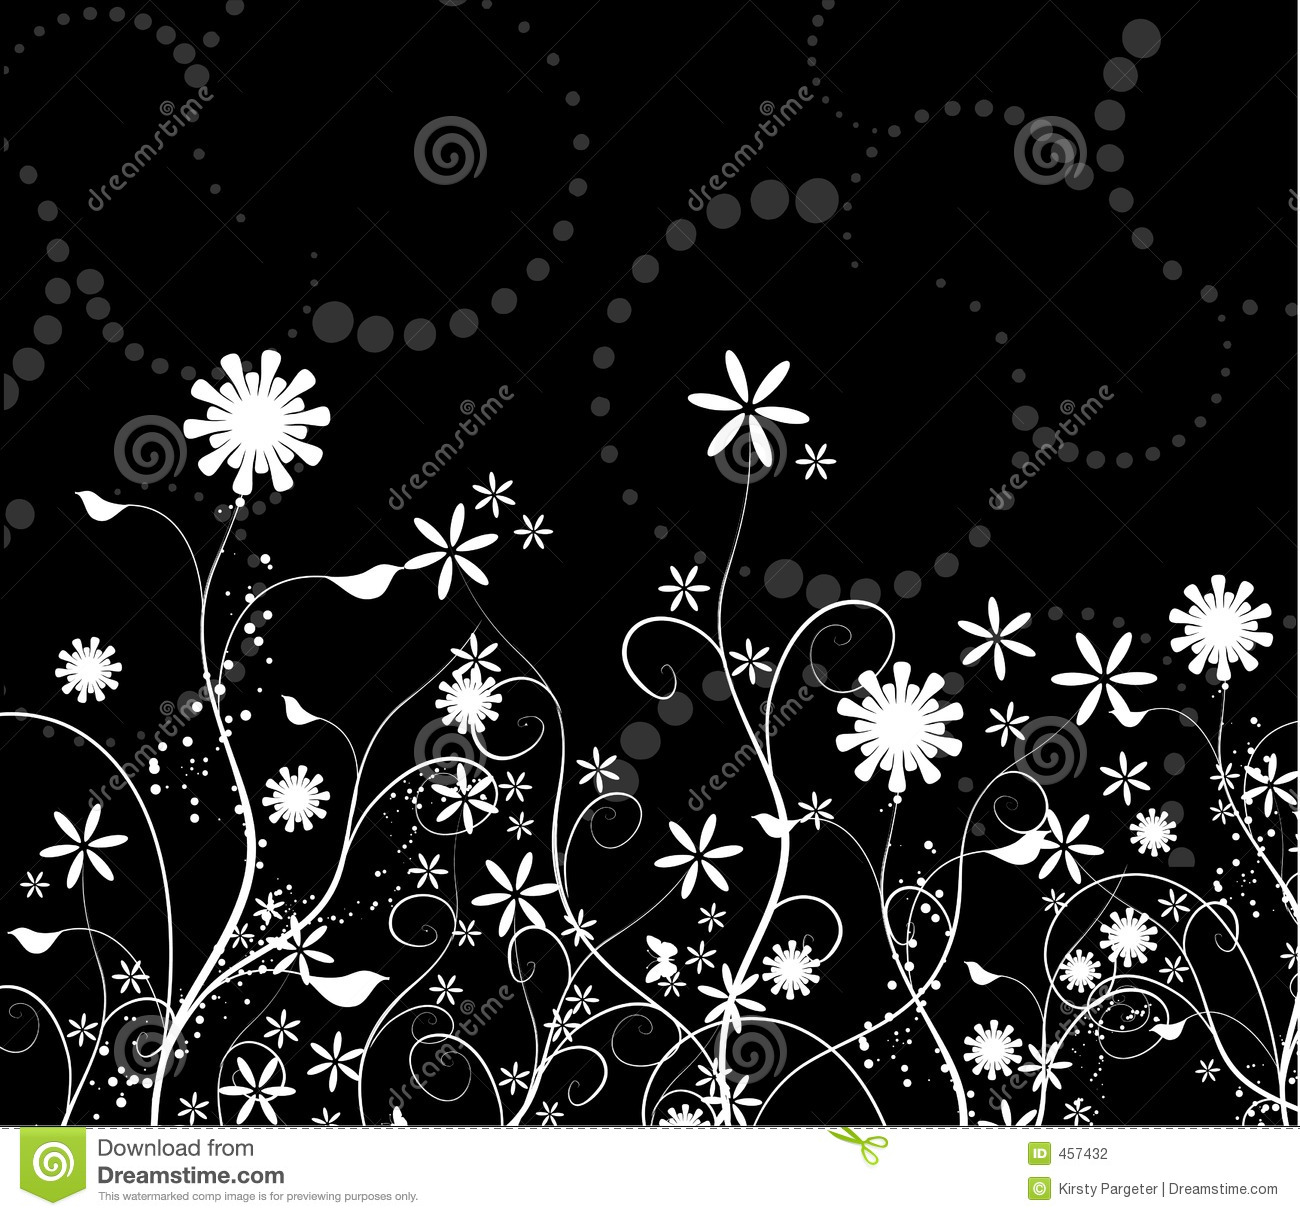 Download Floral chaos stock vector. Illustration of background, nature - 457432